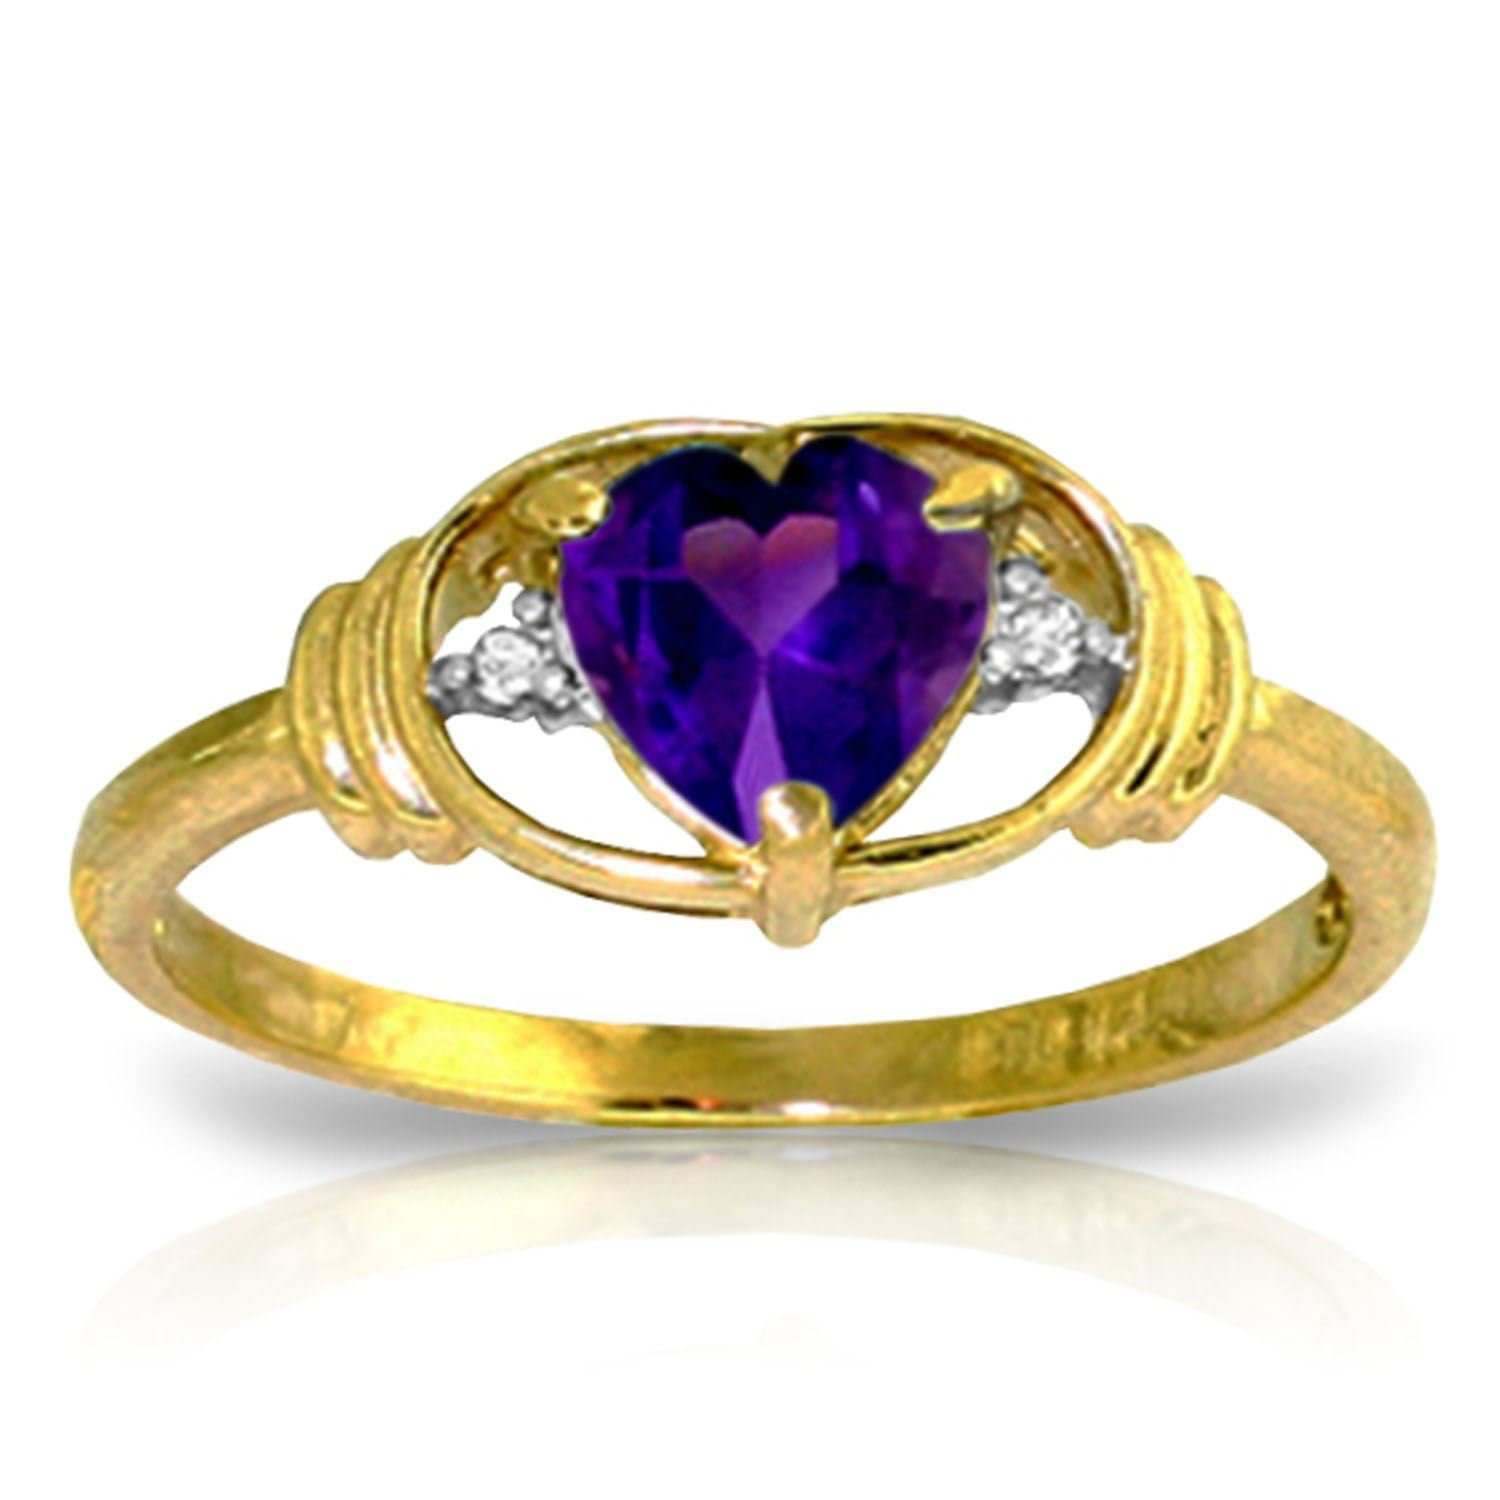 ALARRI 0.96 Carat 14K Solid Gold I Amethyst Love Amethyst Diamond Ring With Ring Size 5